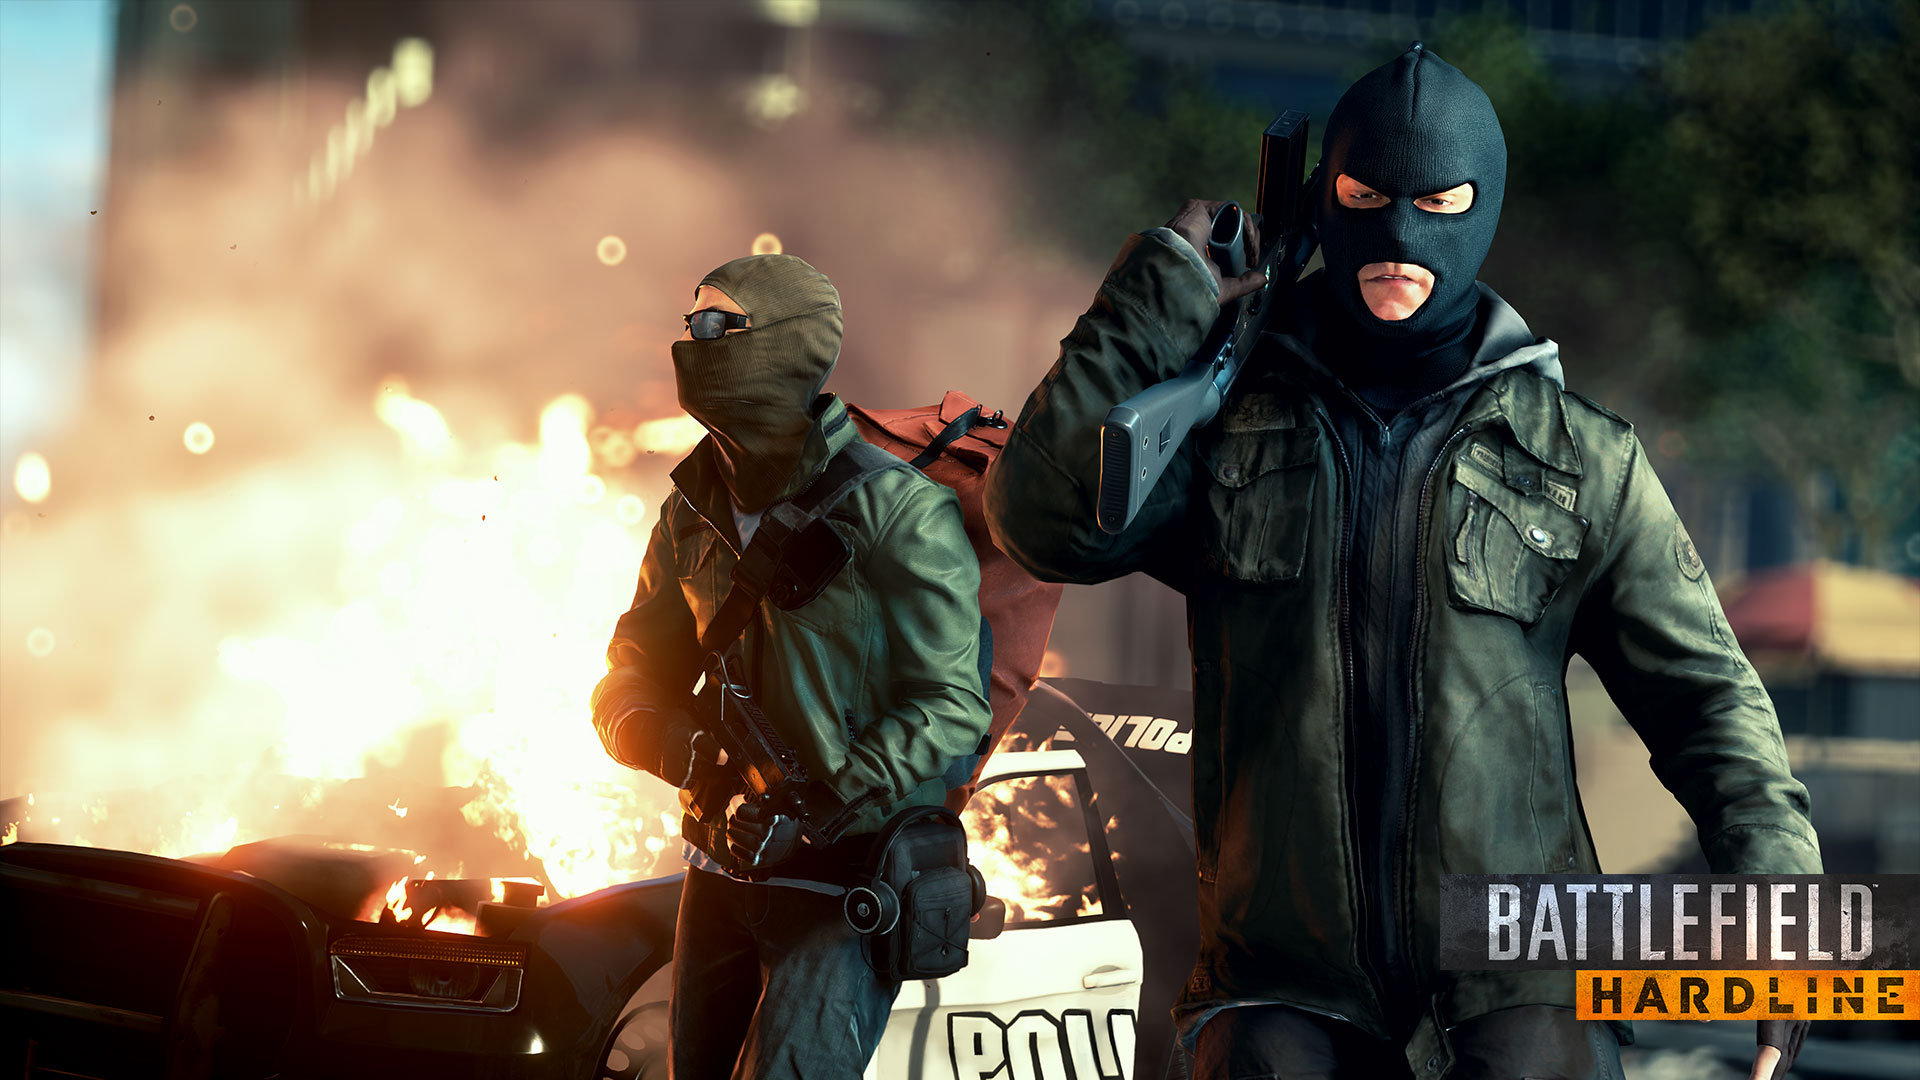 Battlefield Hardline Full HD Wallpaper And Background Image